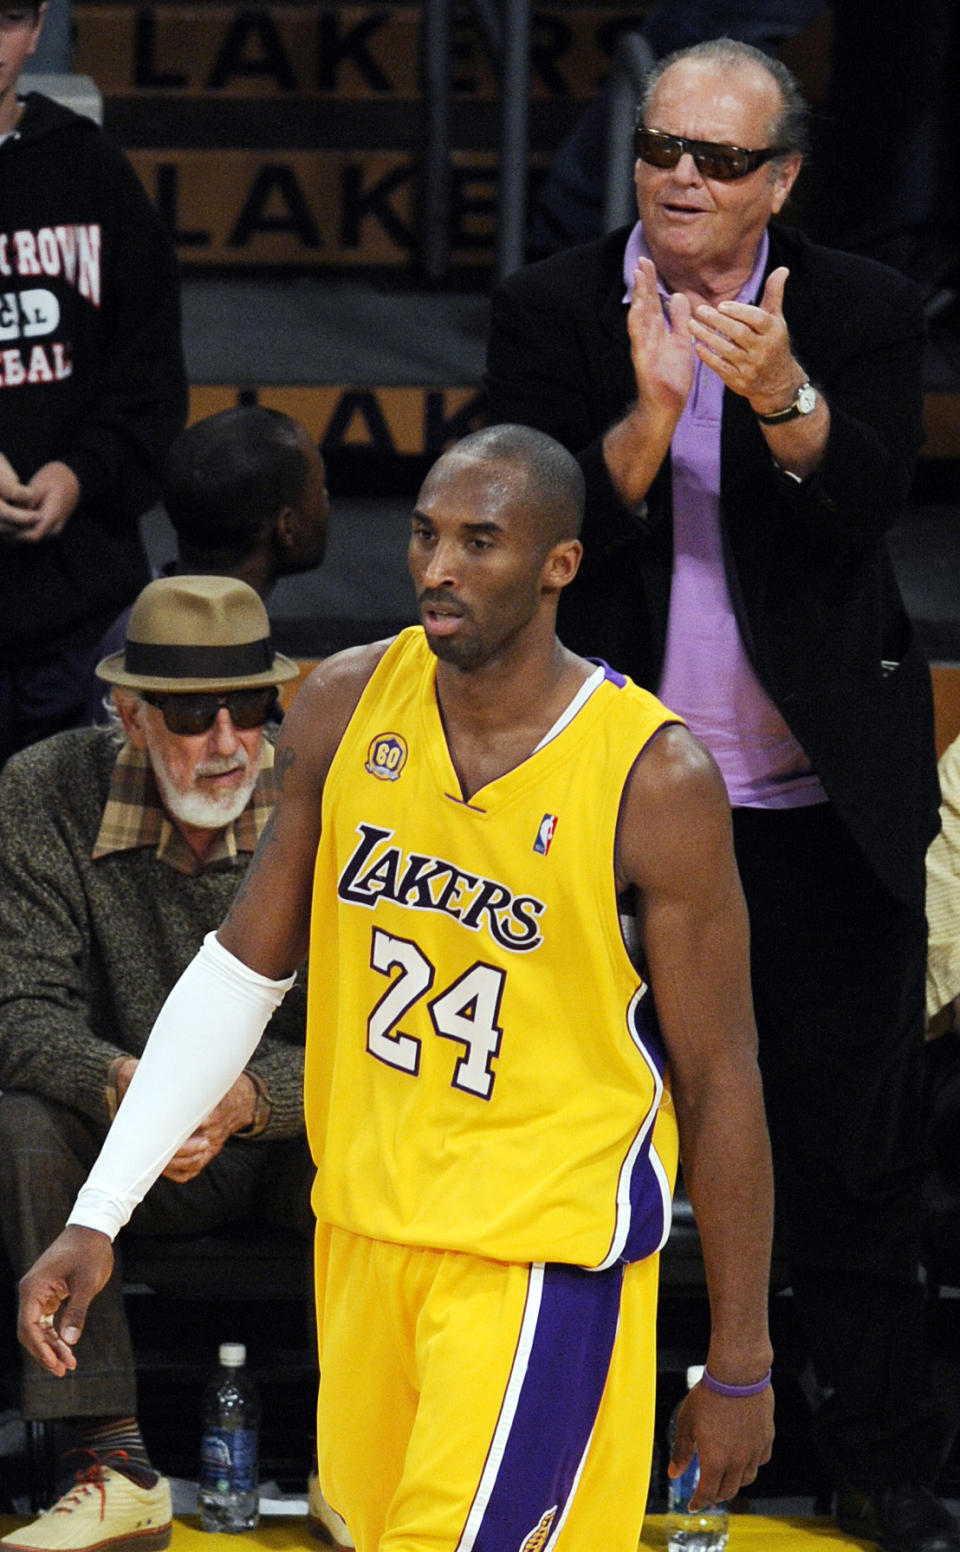 Actor Jack Nicholson, top right, applauds Los Angeles Lakers' Kobe Bryant after he scored during the second half of Game 2 of the NBA Western Conference basketball finals against the San Antonio Spurs, in Los Angeles, Friday, May 23, 2008. Looking on at left is producer Lou Adler.  (AP Photo/Chris Pizzello)